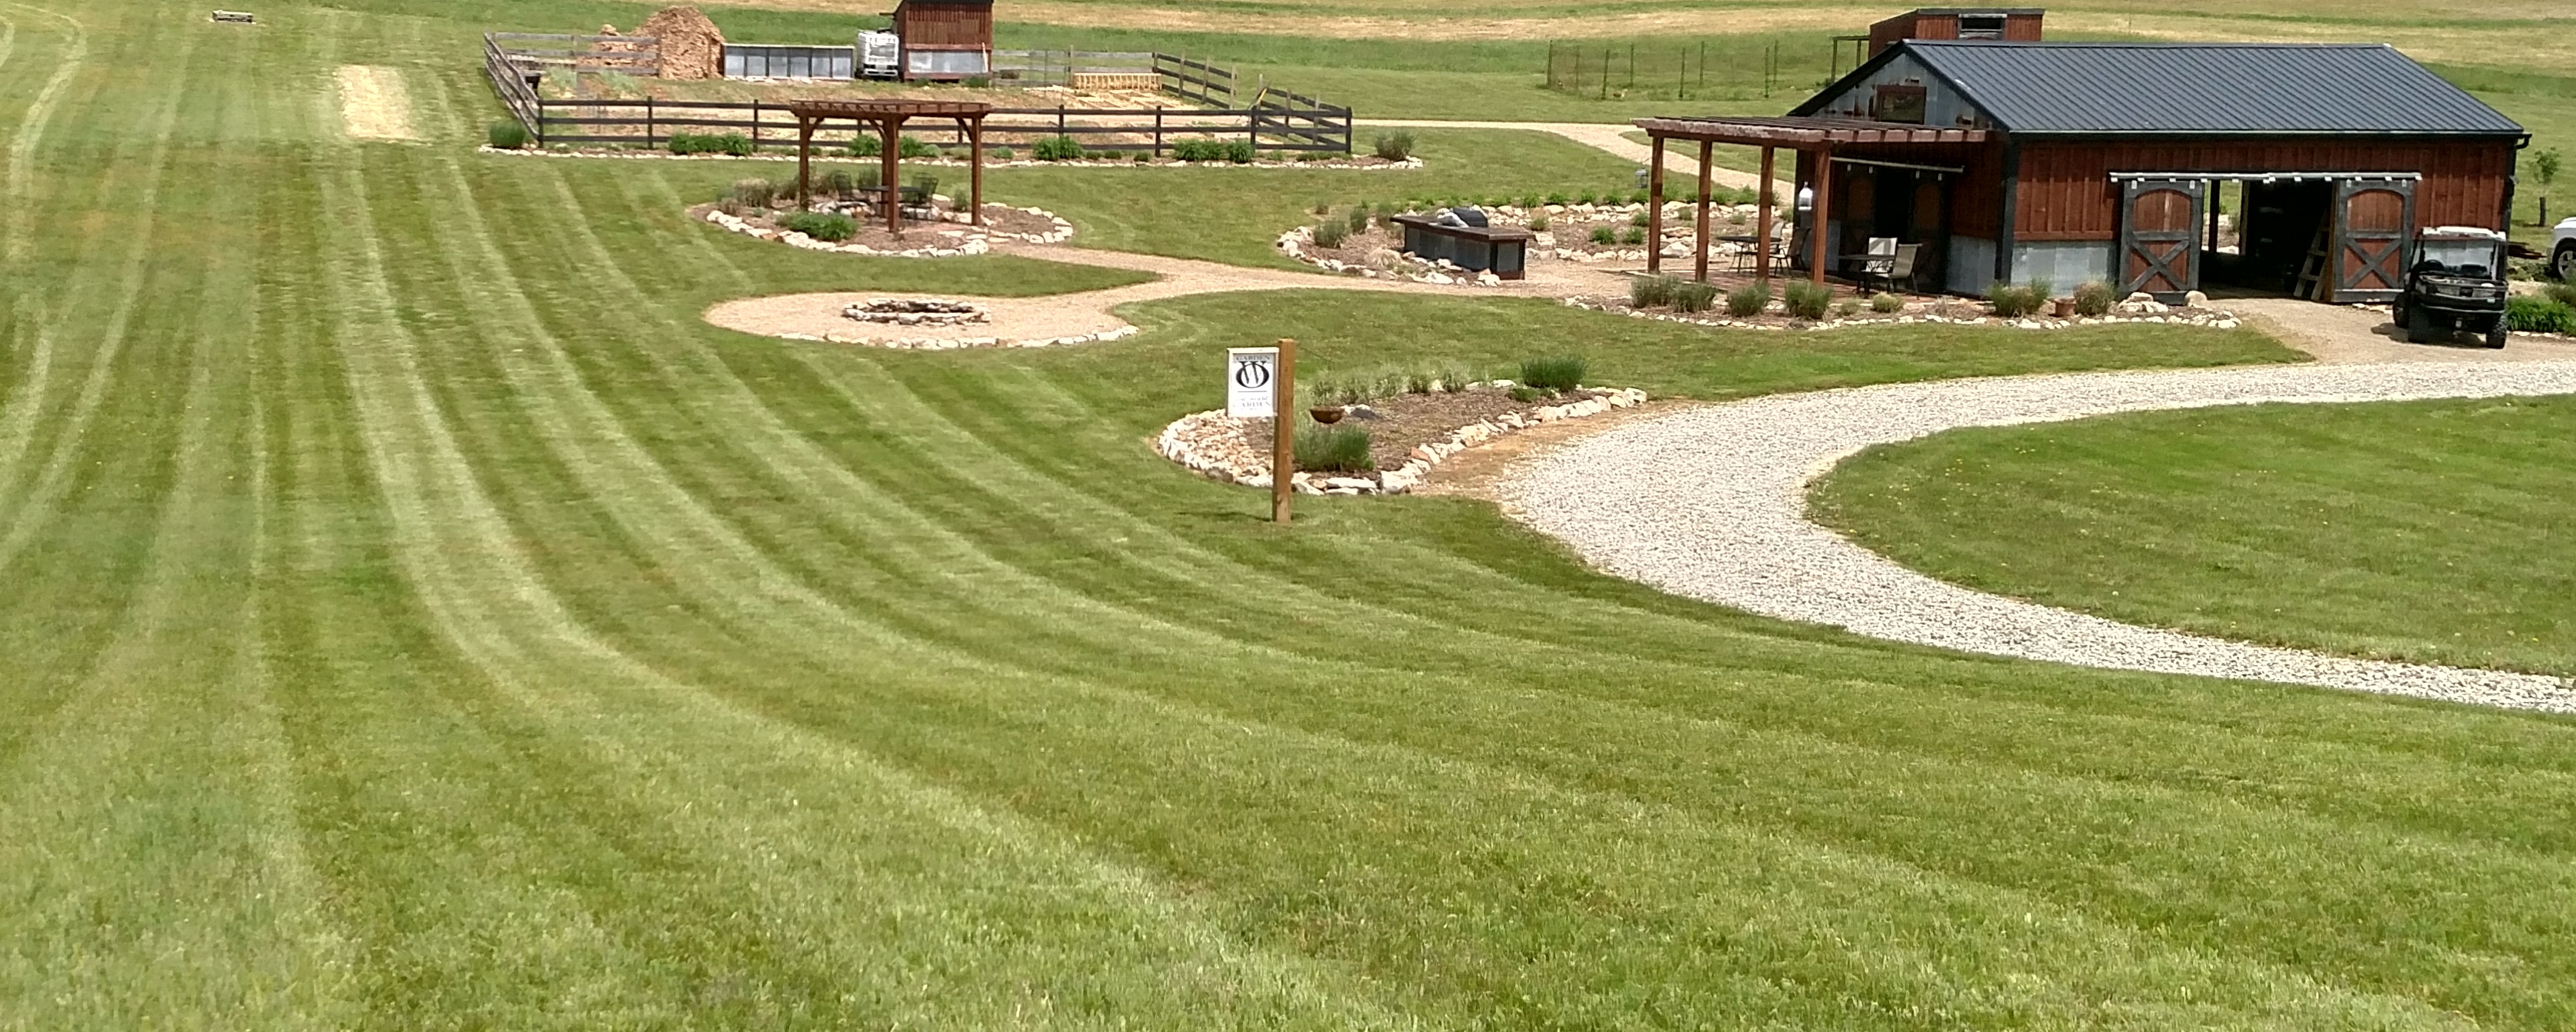 6 Tips To A Great Lawn - Without Chemicals! - Old World